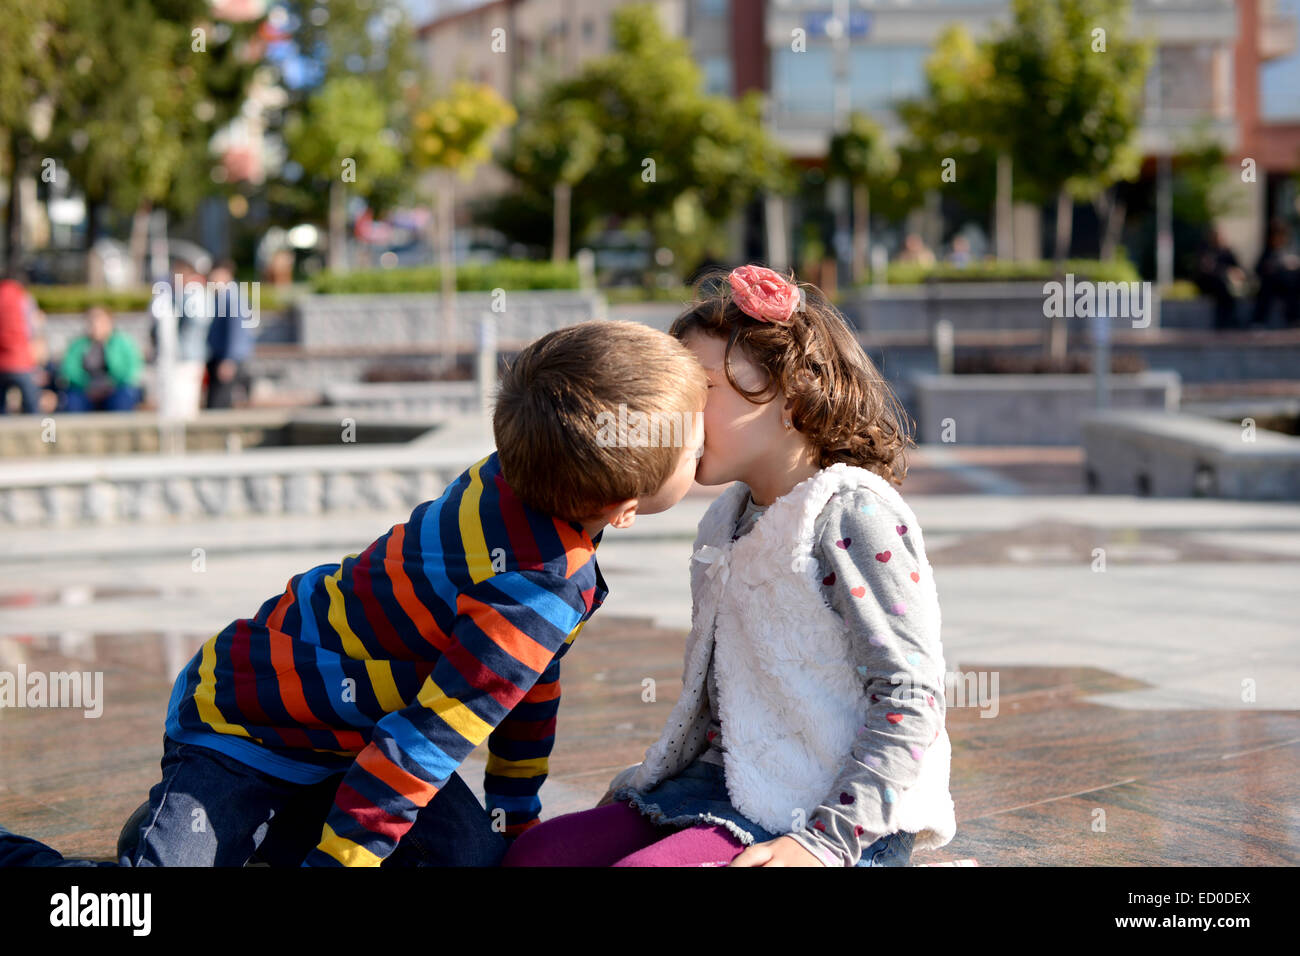 Little boy (6-7) and girl (4-5) kissing - Stock Image